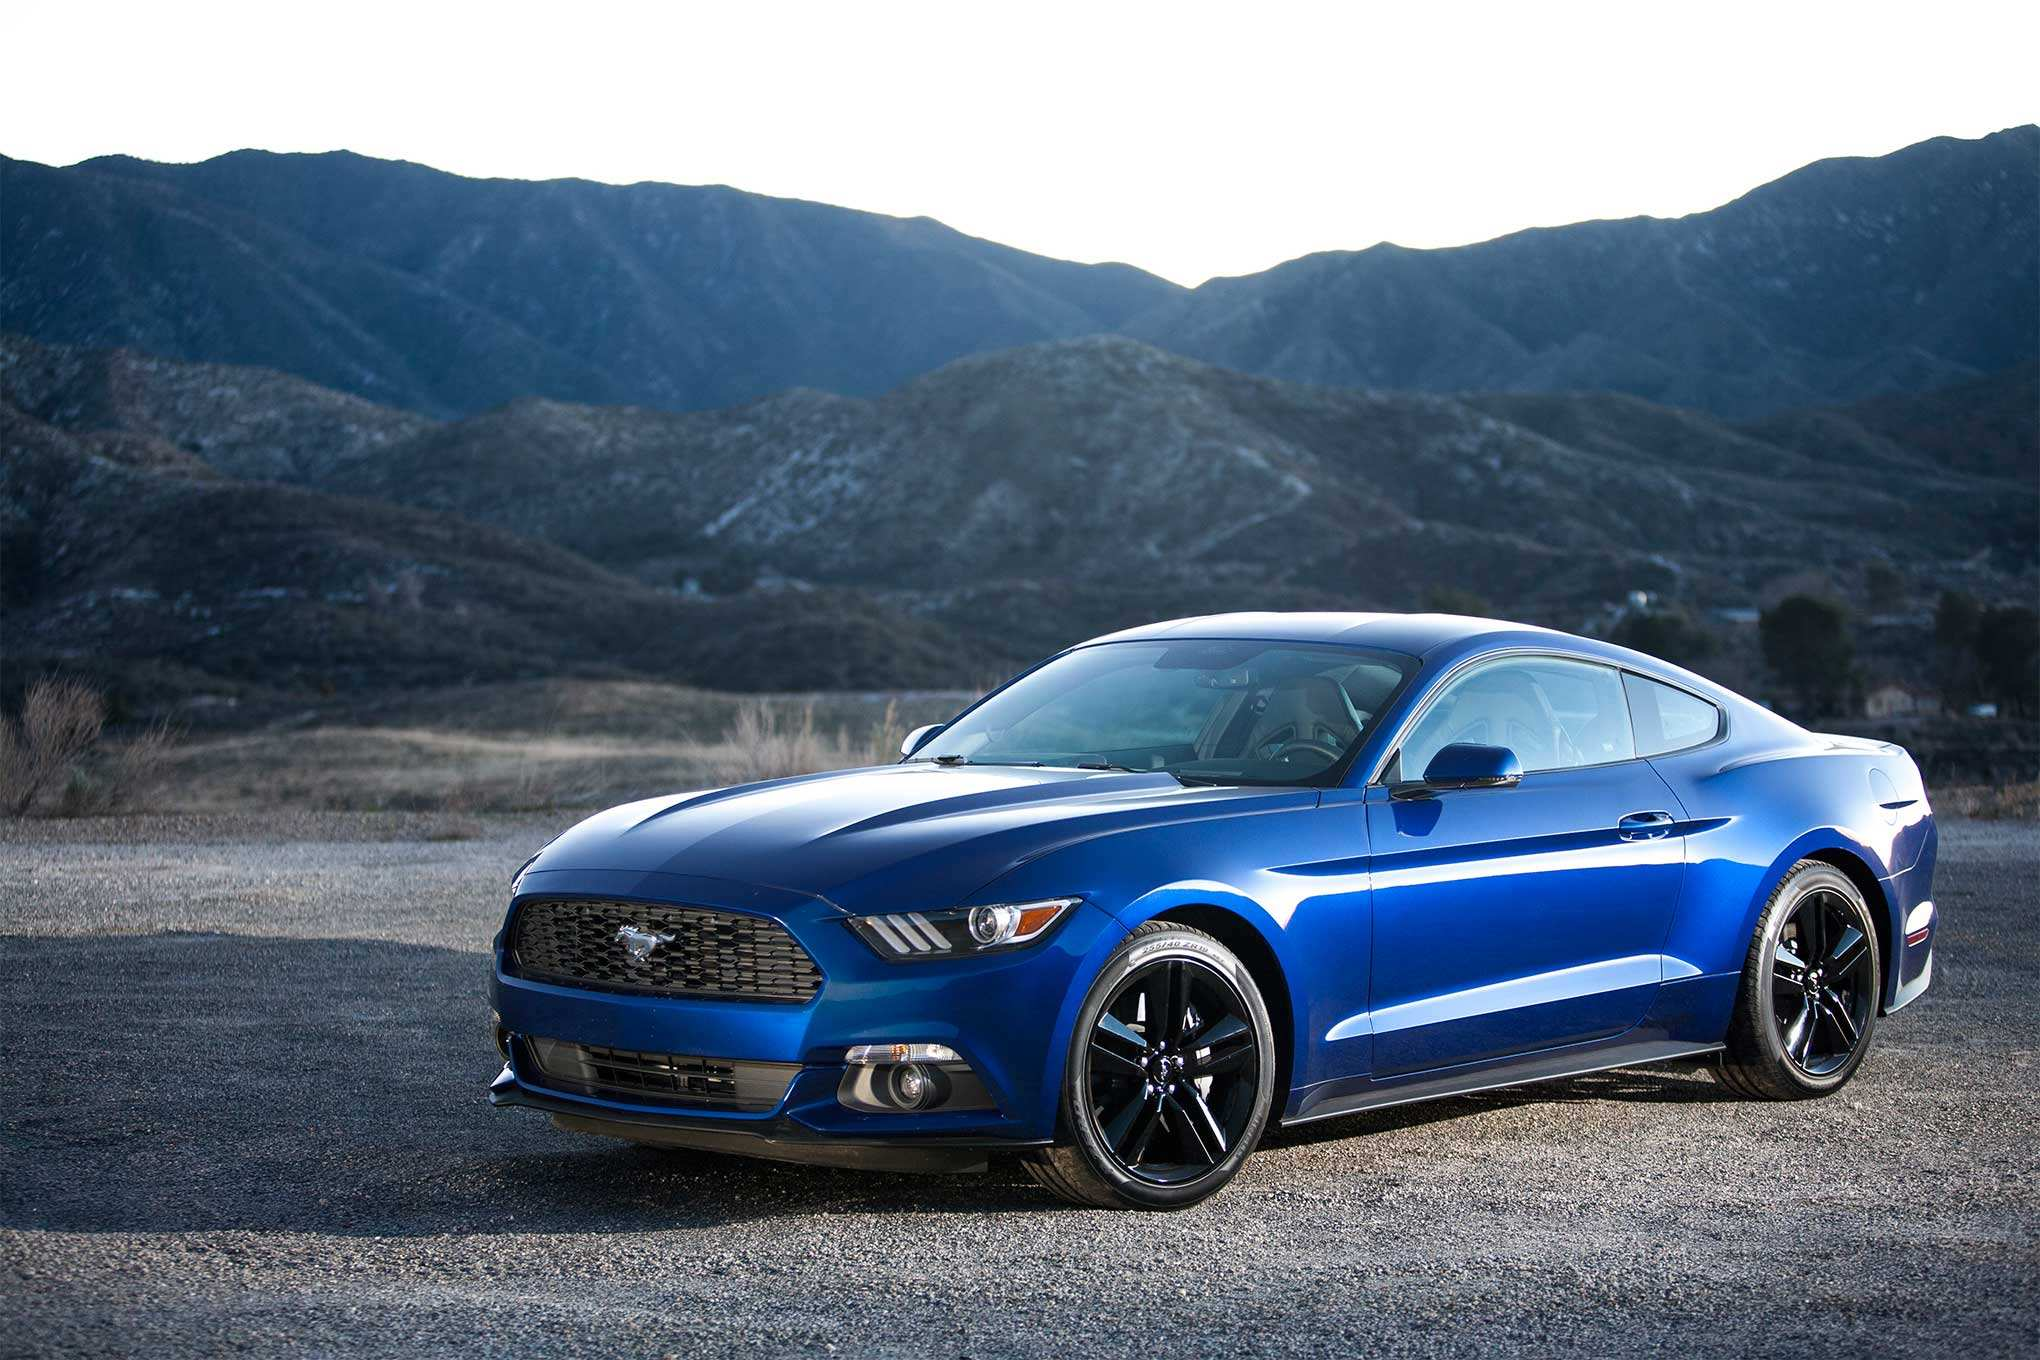 14 All New 2020 Ford Mustang Hybrid Redesign and Concept for 2020 Ford Mustang Hybrid